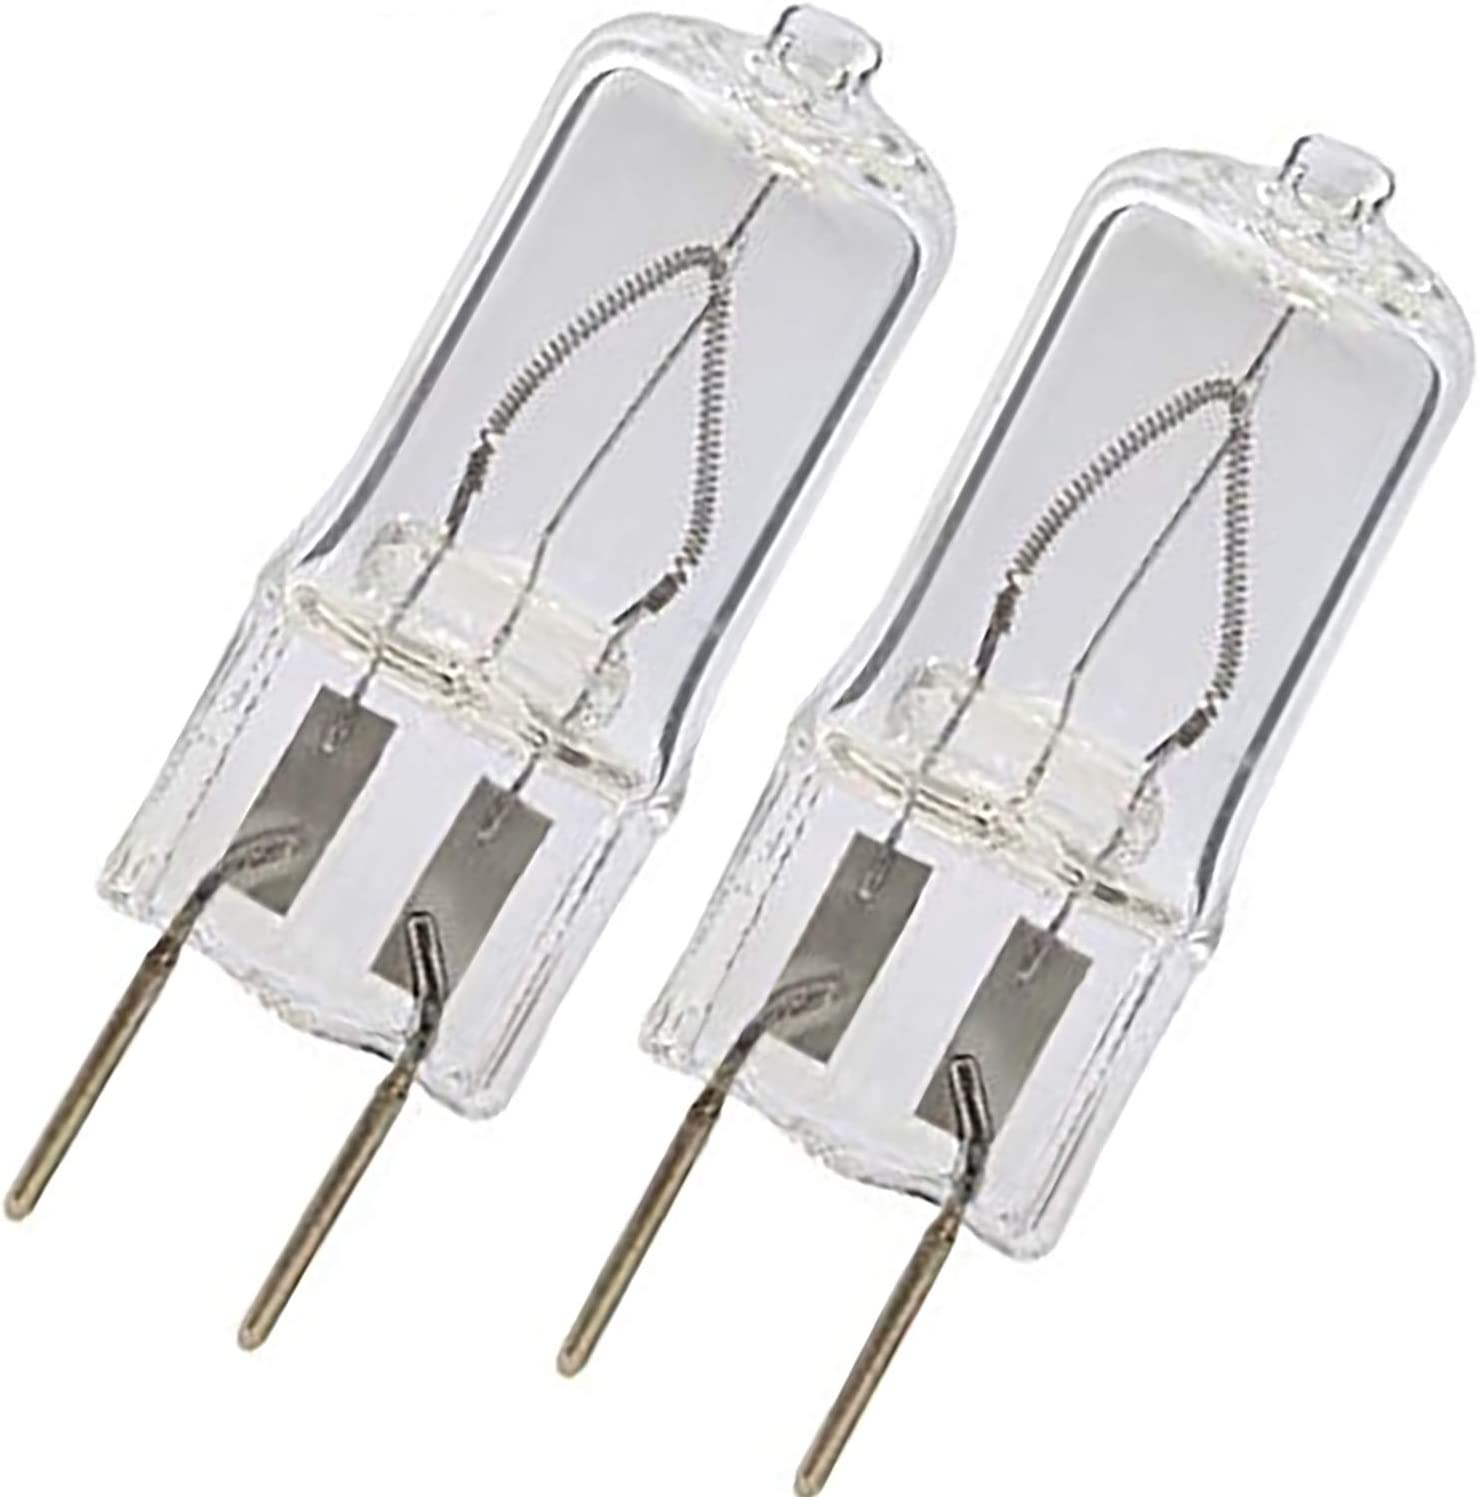 BULBLY 2pack WB25X10019 20W Halogen Lamp Bulb 20W G8 Bi-Pin Base Replacement for GE Microwave